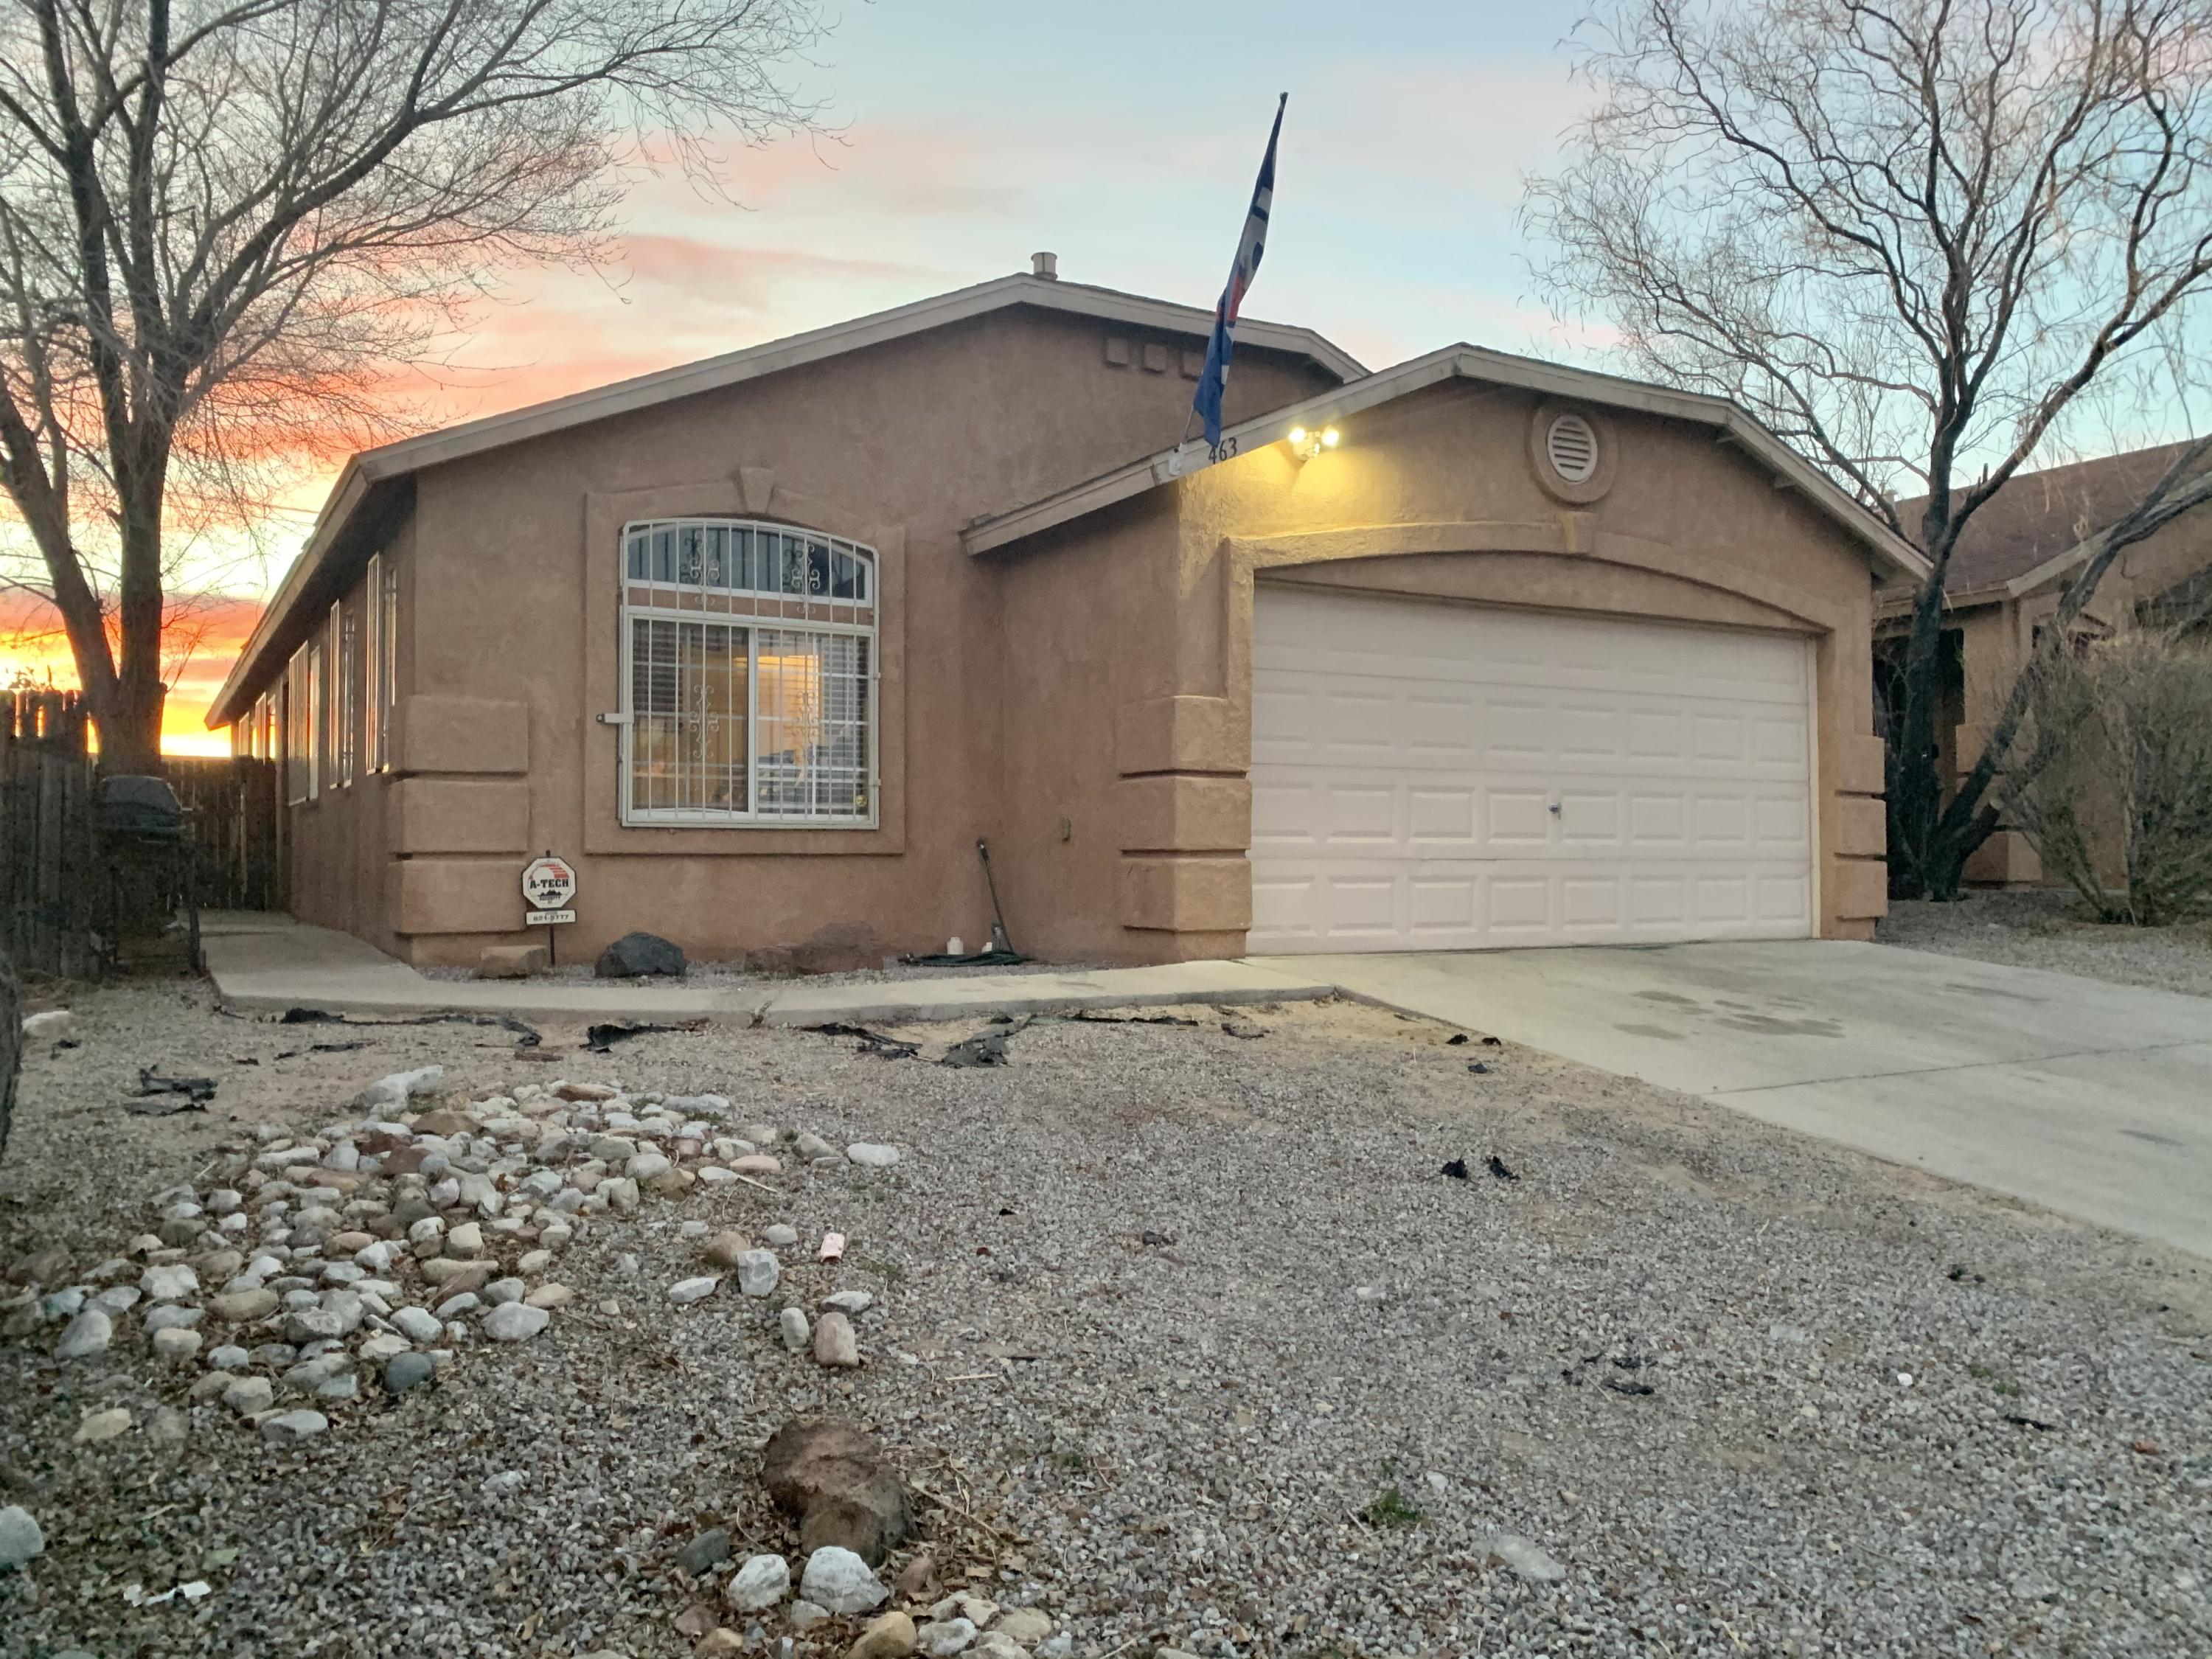 This home has two living areas, bar or office area in the living room, vaulted ceilings, niches and tile throughout main areas. Master bedroom has a huge garden tub and separate shower with walk in closet. The secondary bedrooms feature ample space. Updates include raised and newly stucco/painted privacy wall. All appliances, swamp cooler, and water heater are less than 5 years old.